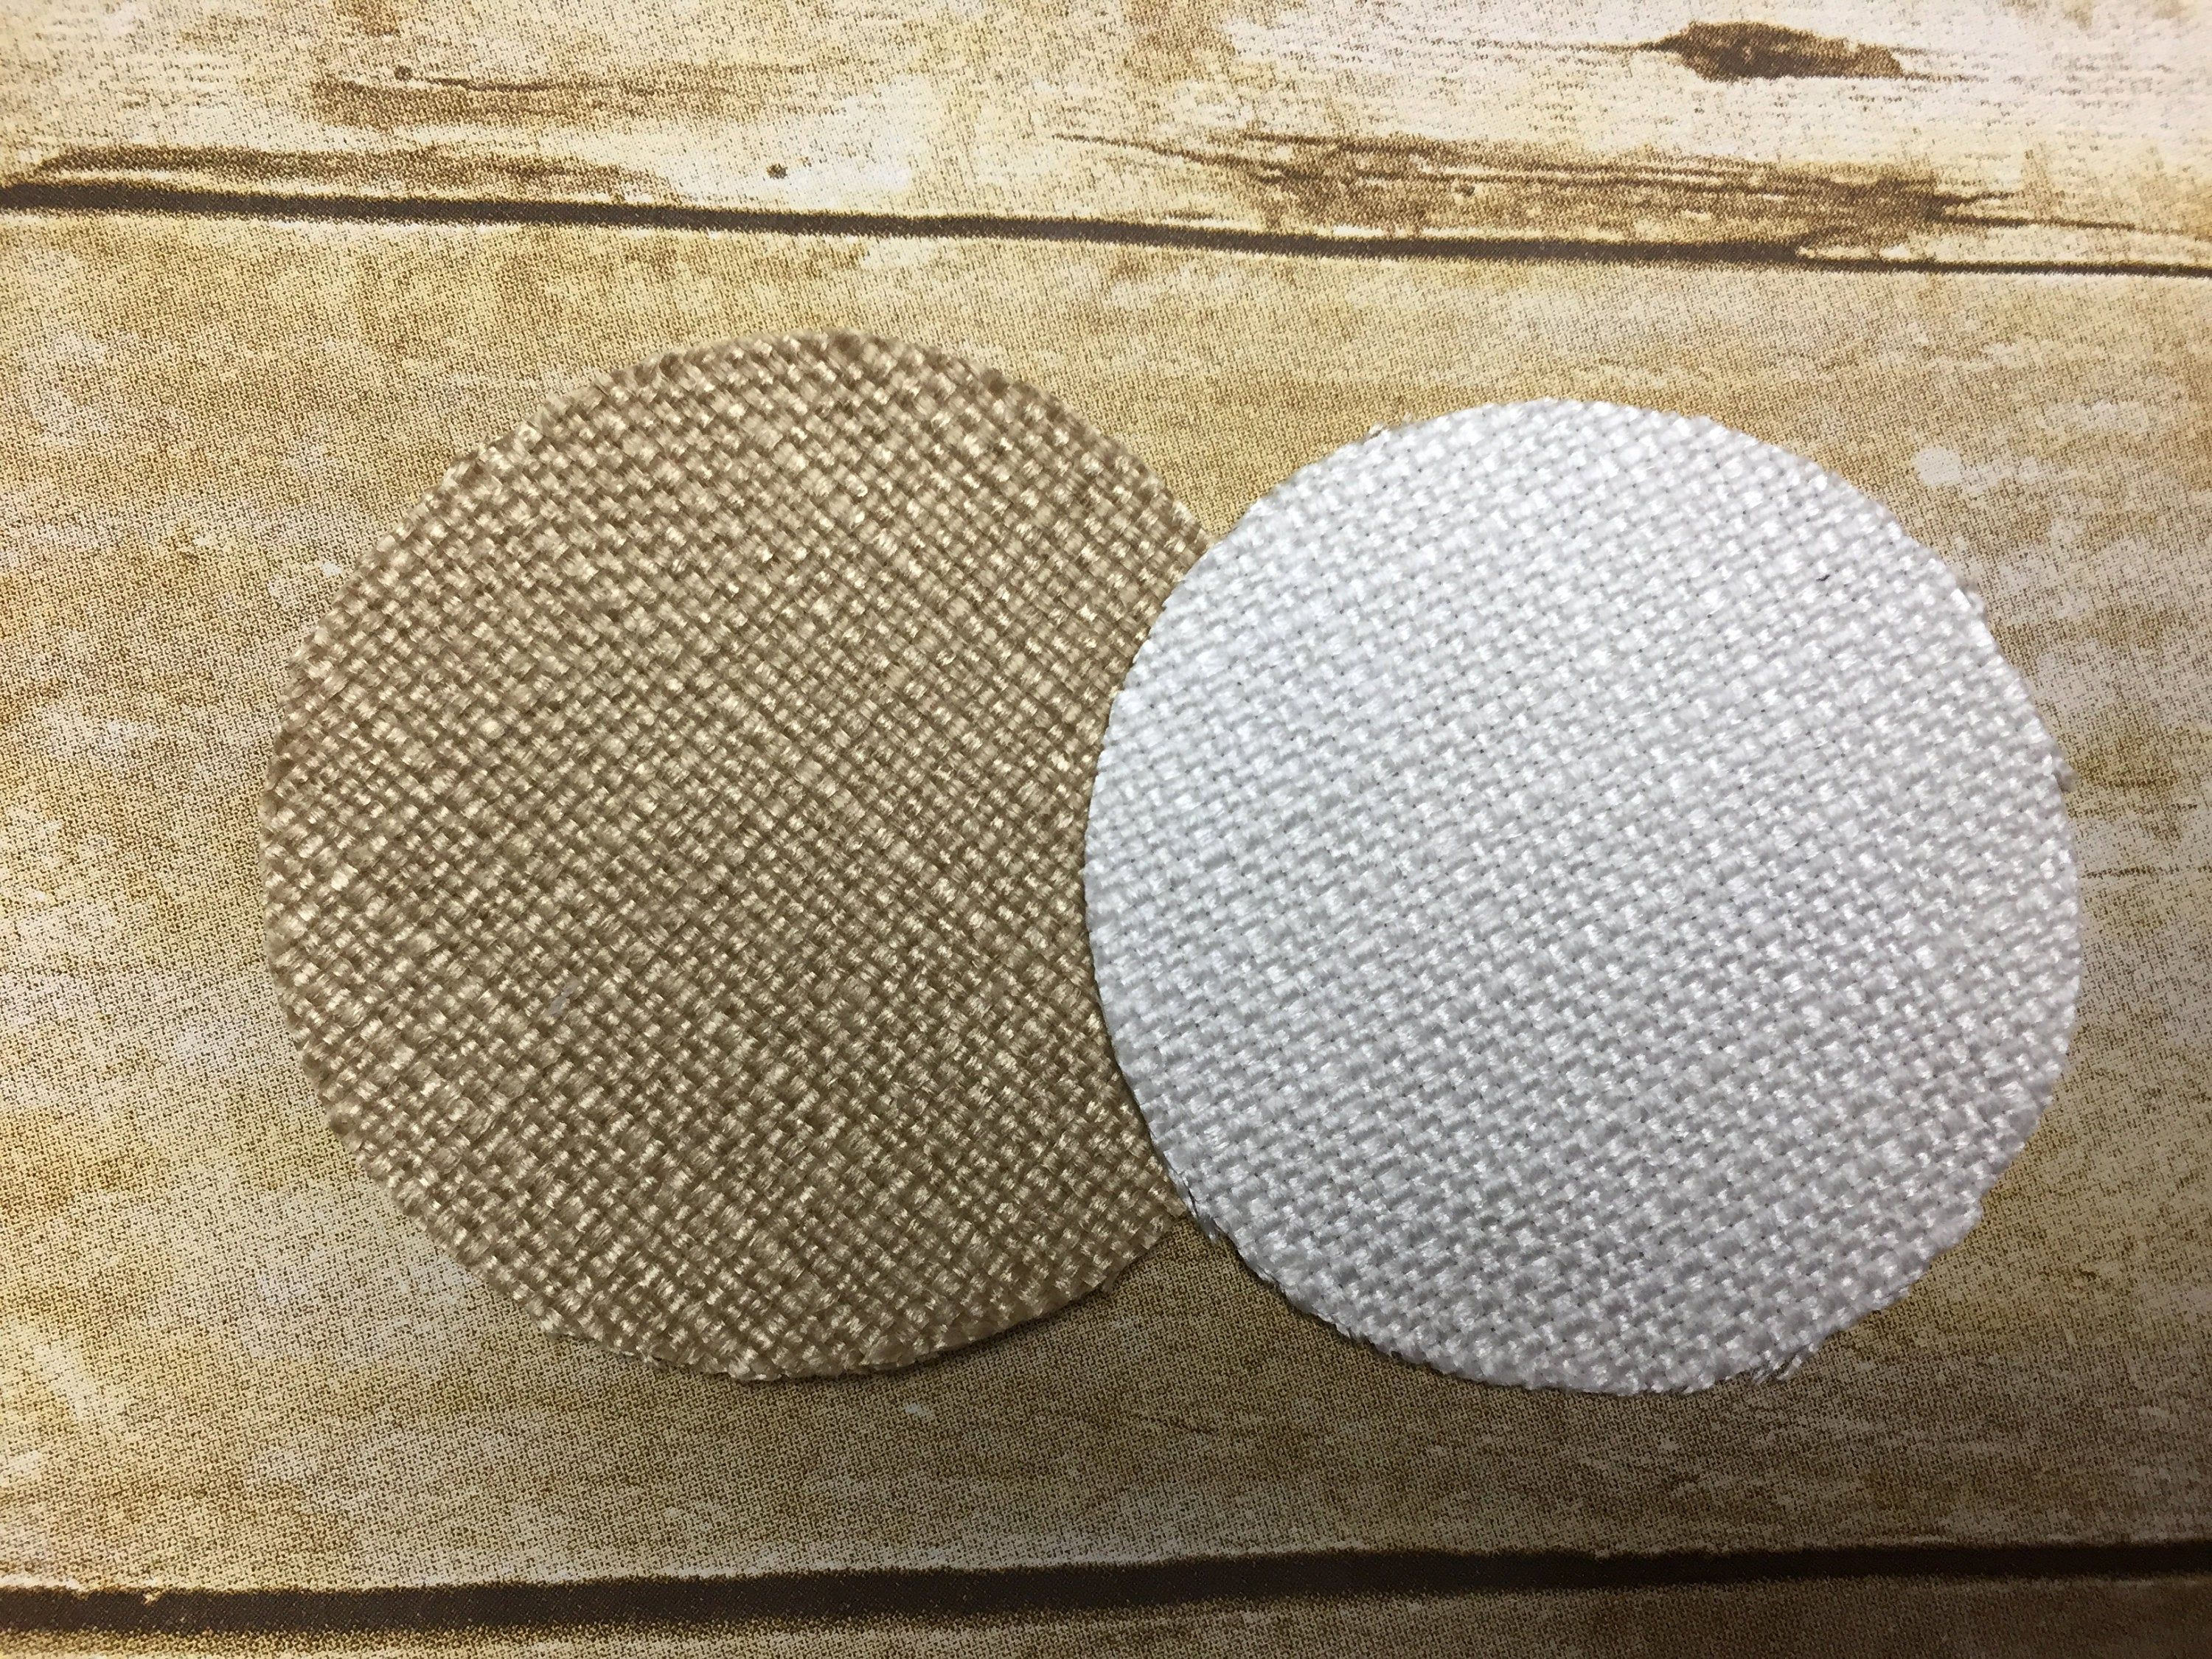 Round Sublimation Hat Patches Polyester Hat Patches 3 Inch Burlap Hat Patch By Theshabbystitchery On Etsy Hat Patches Patches Burlap Fabric